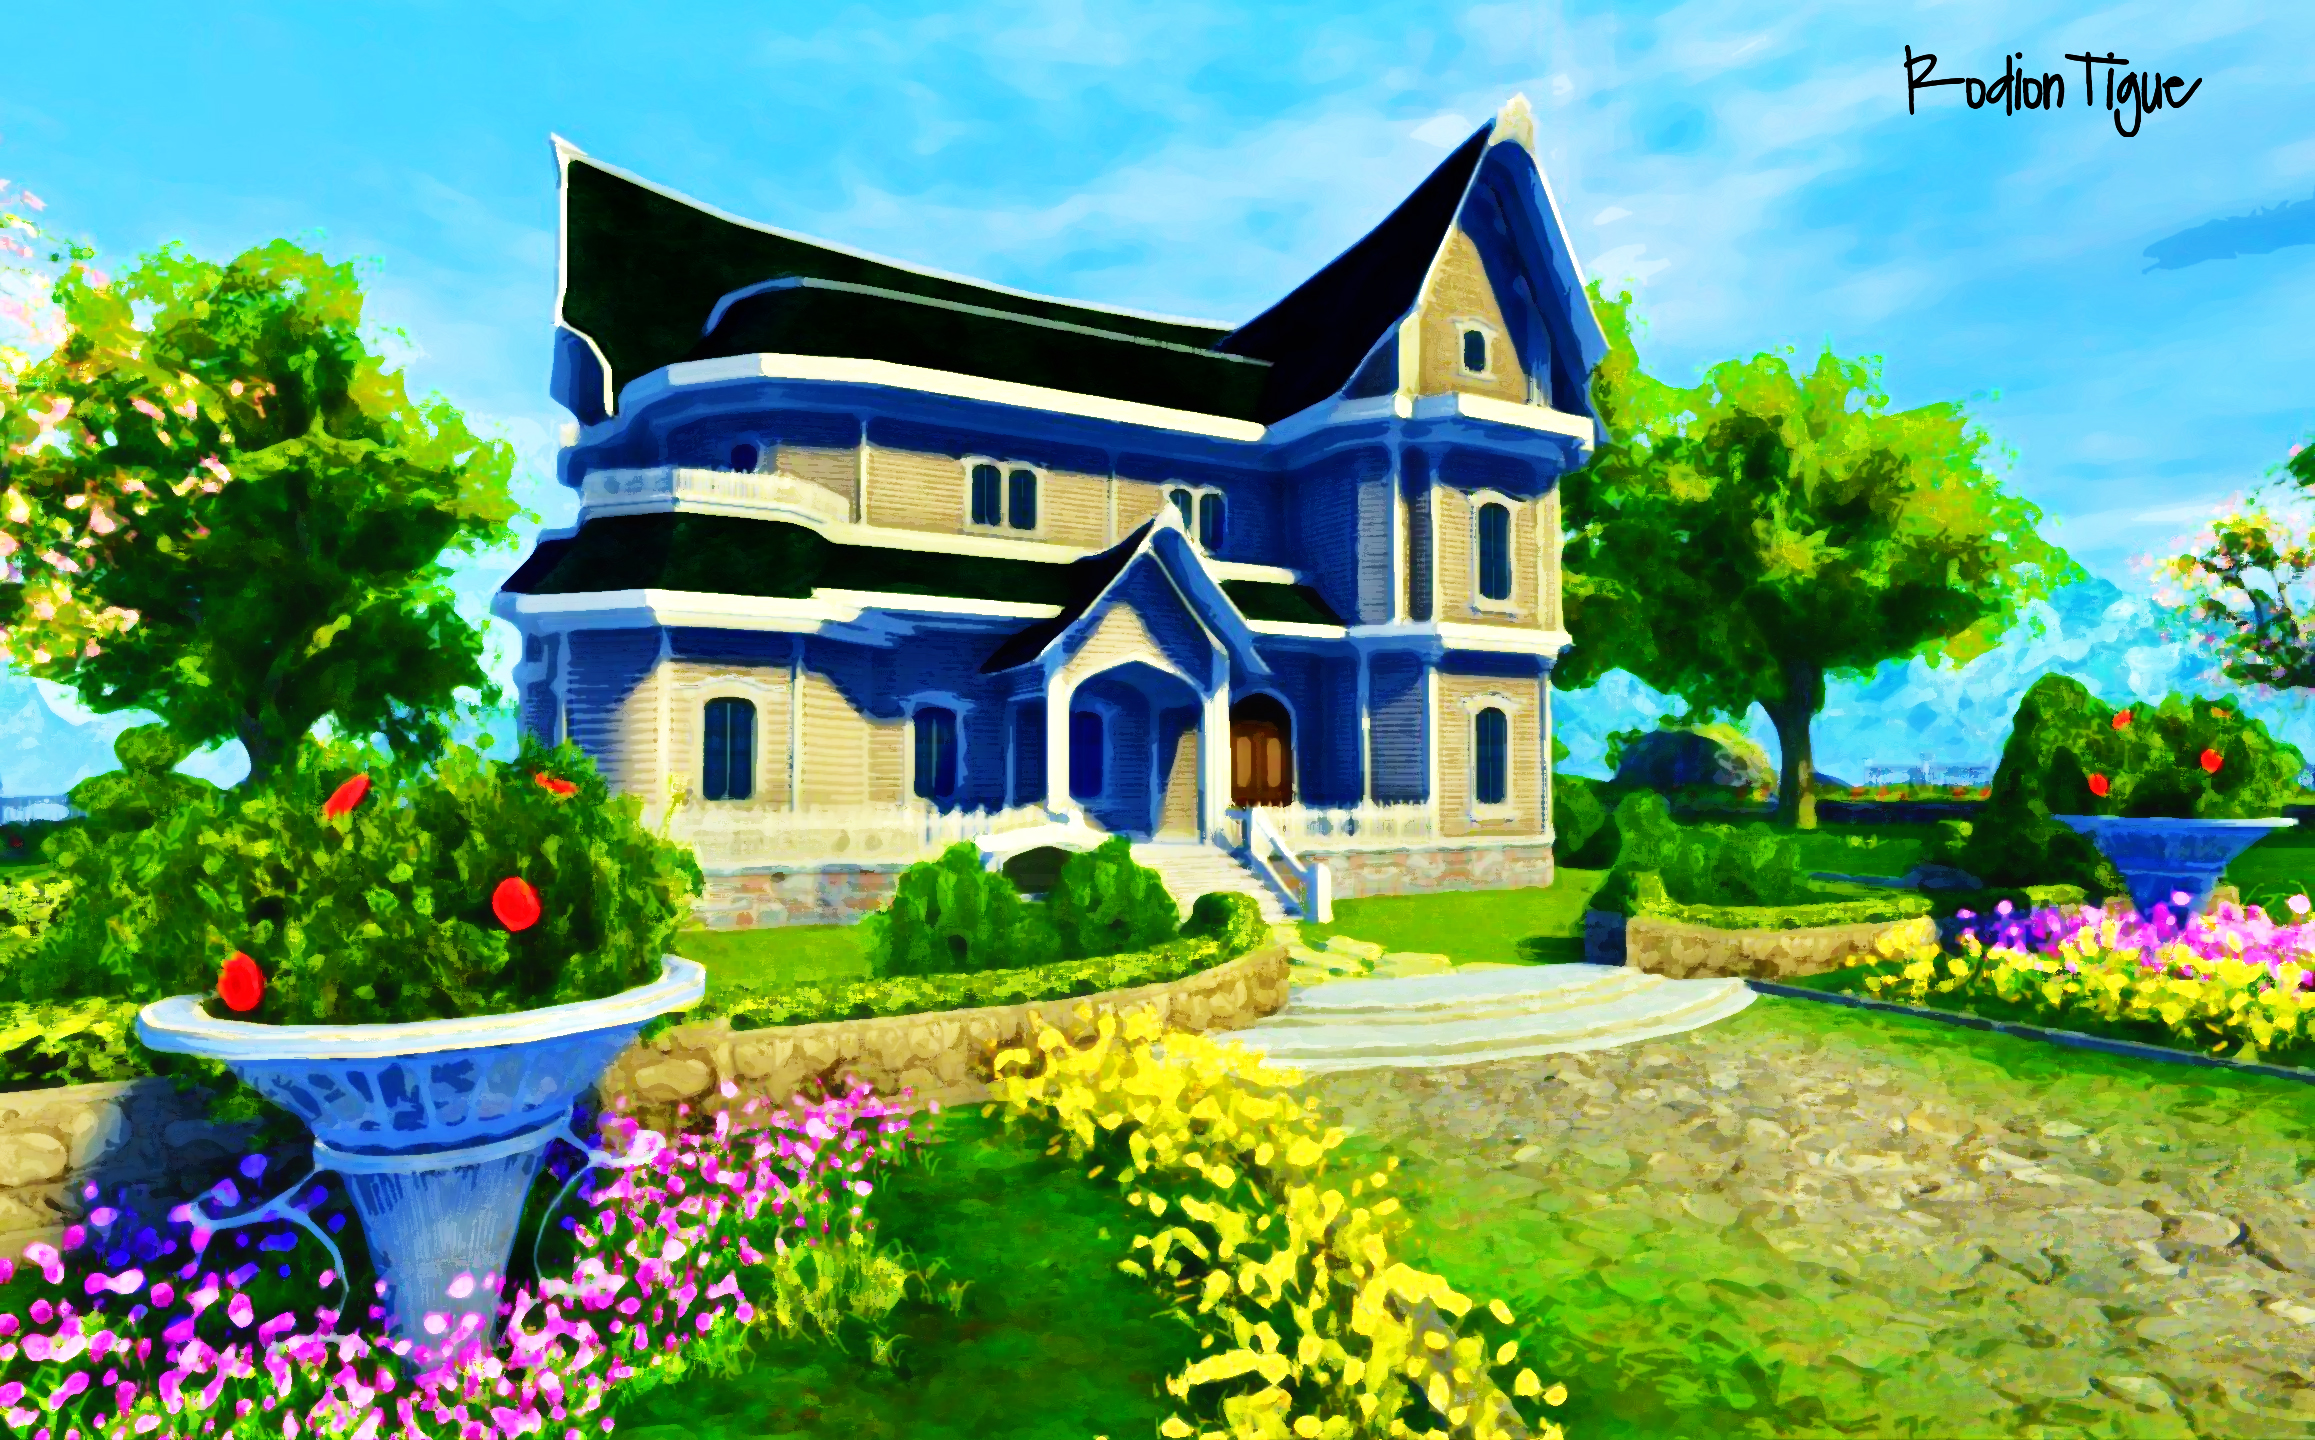 Dream home wallpaper by rodiontigue on deviantart for 3d wallpaper for dream home